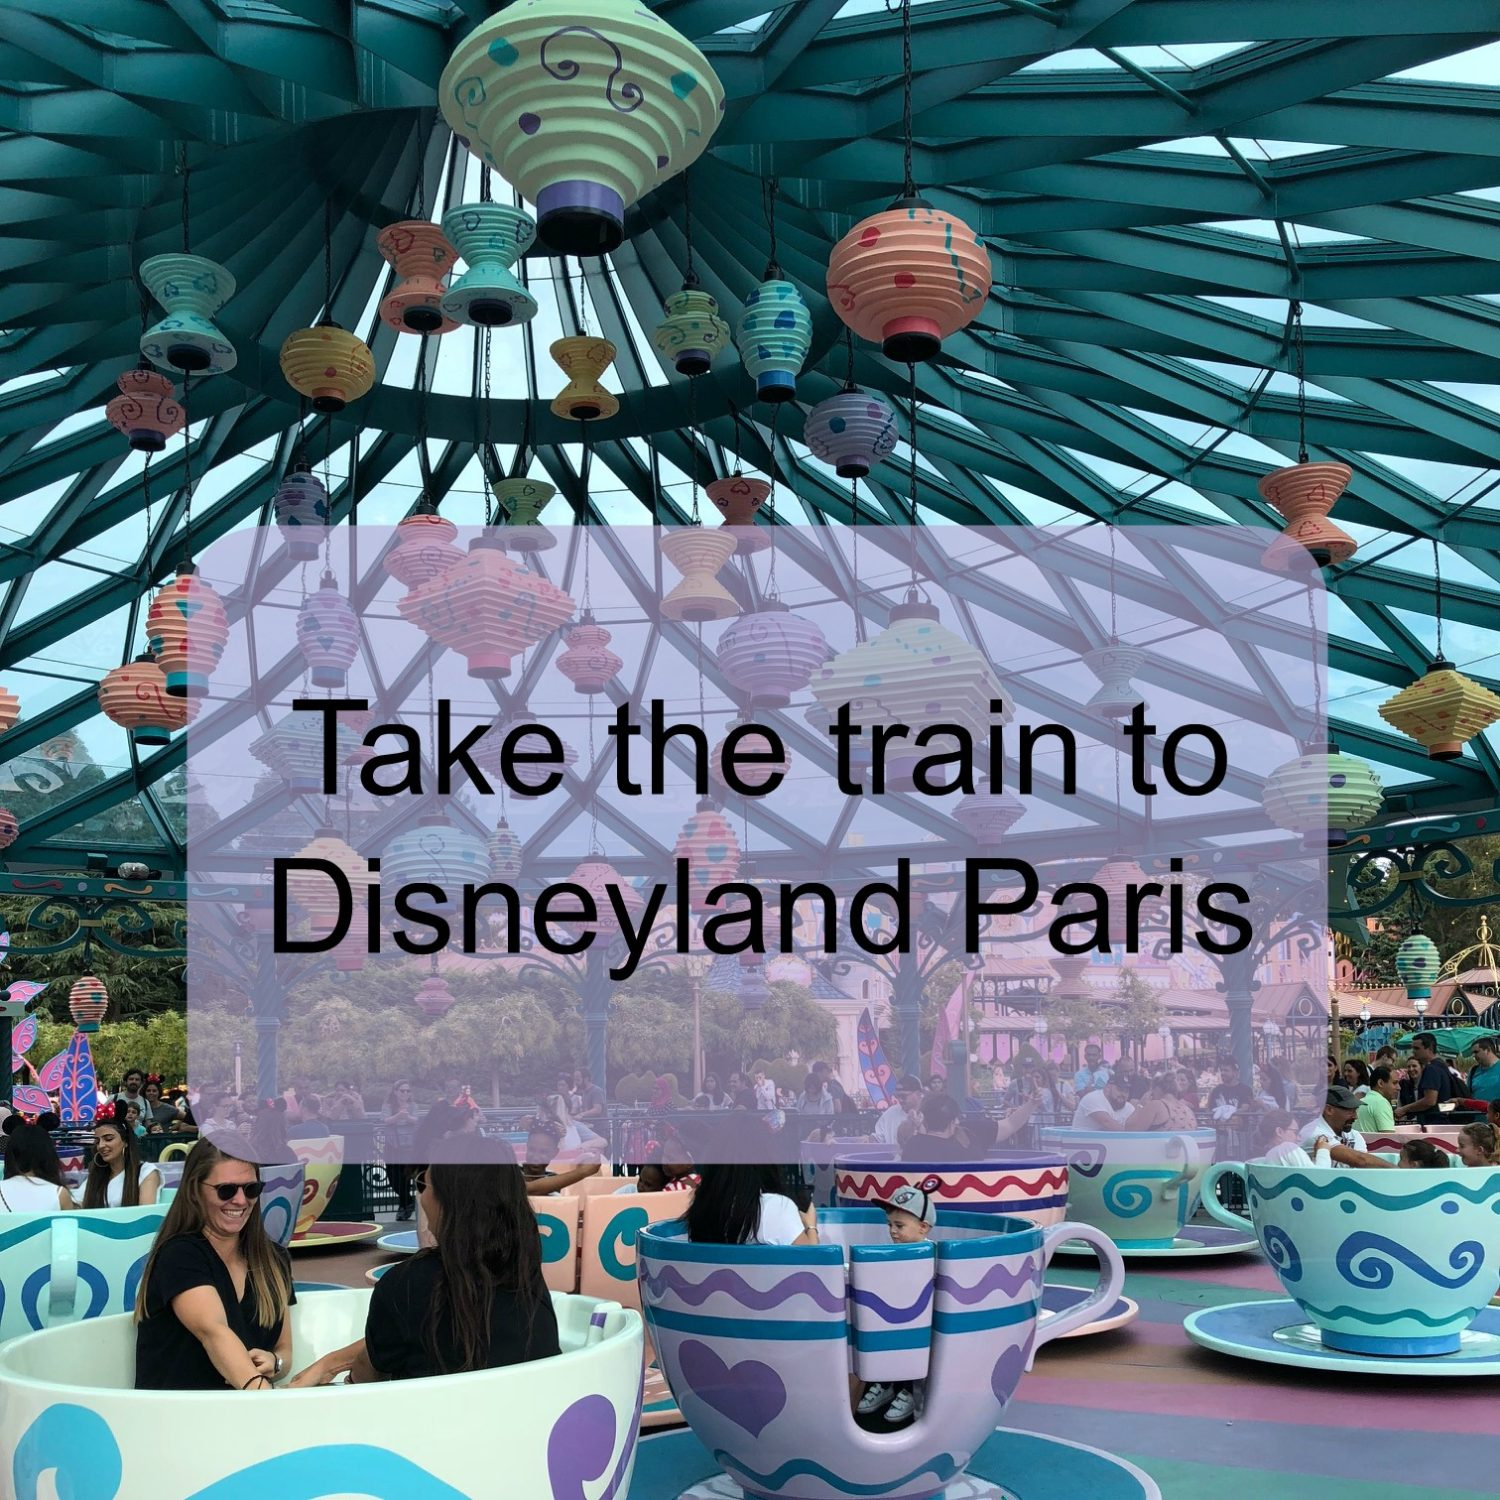 Take the train to Disneyland Paris: Directions and Station Photos